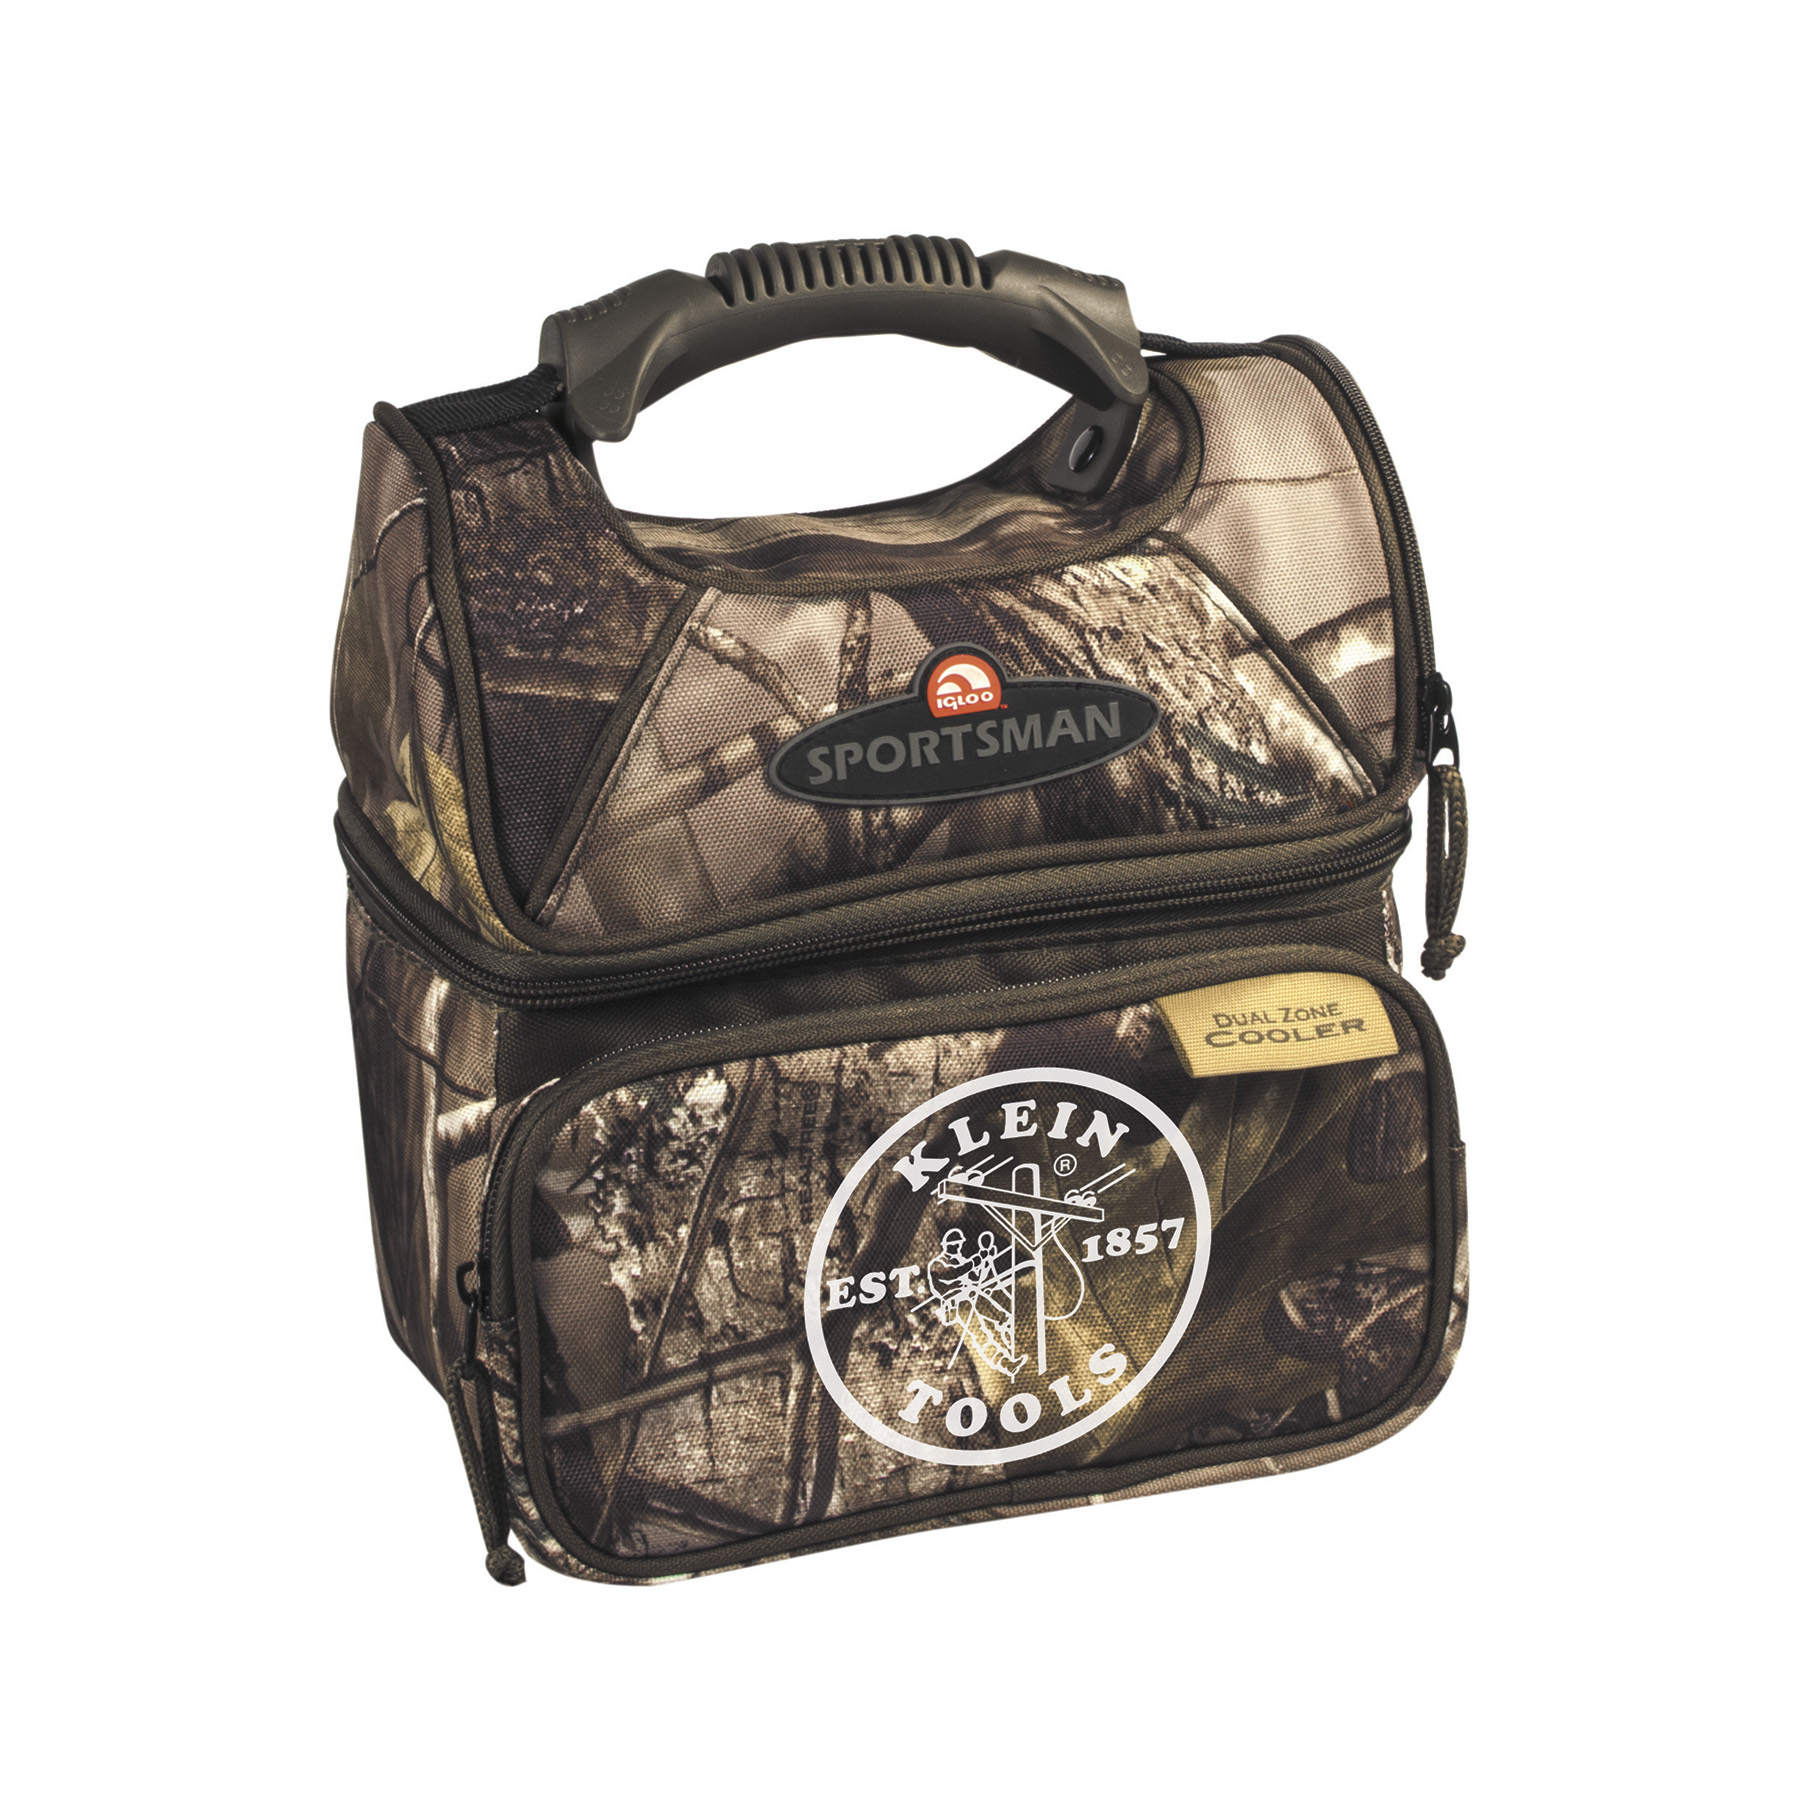 limited edition klein tools camo igloo cooler